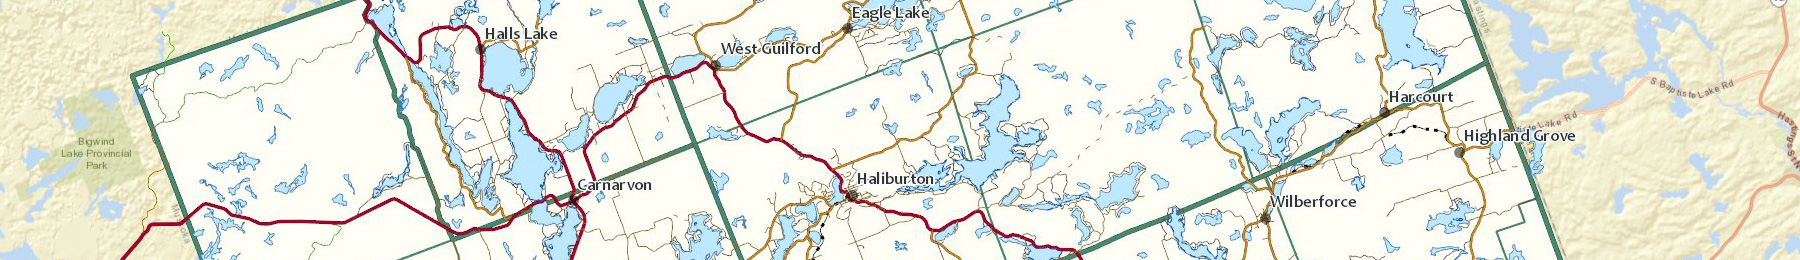 haliburton county gis map